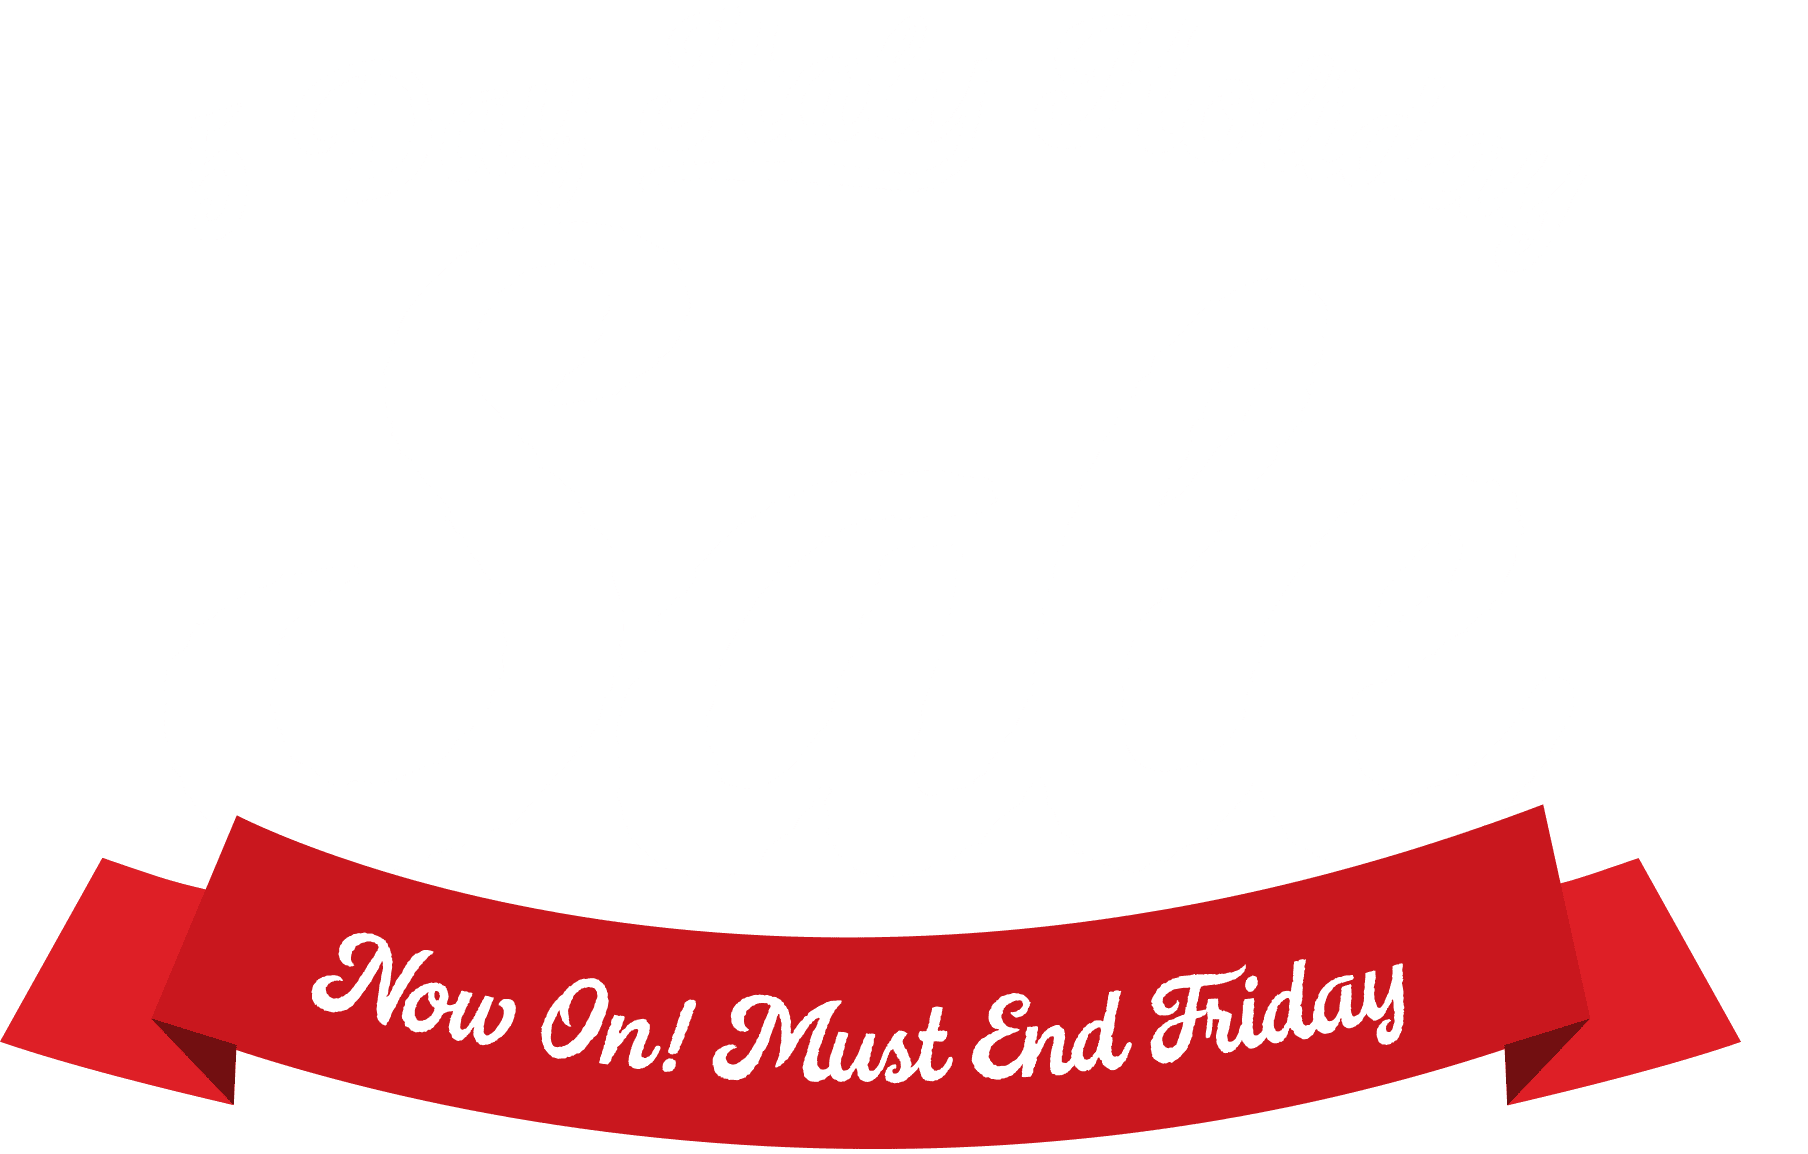 5 Day Italy Holiday Sale Now On